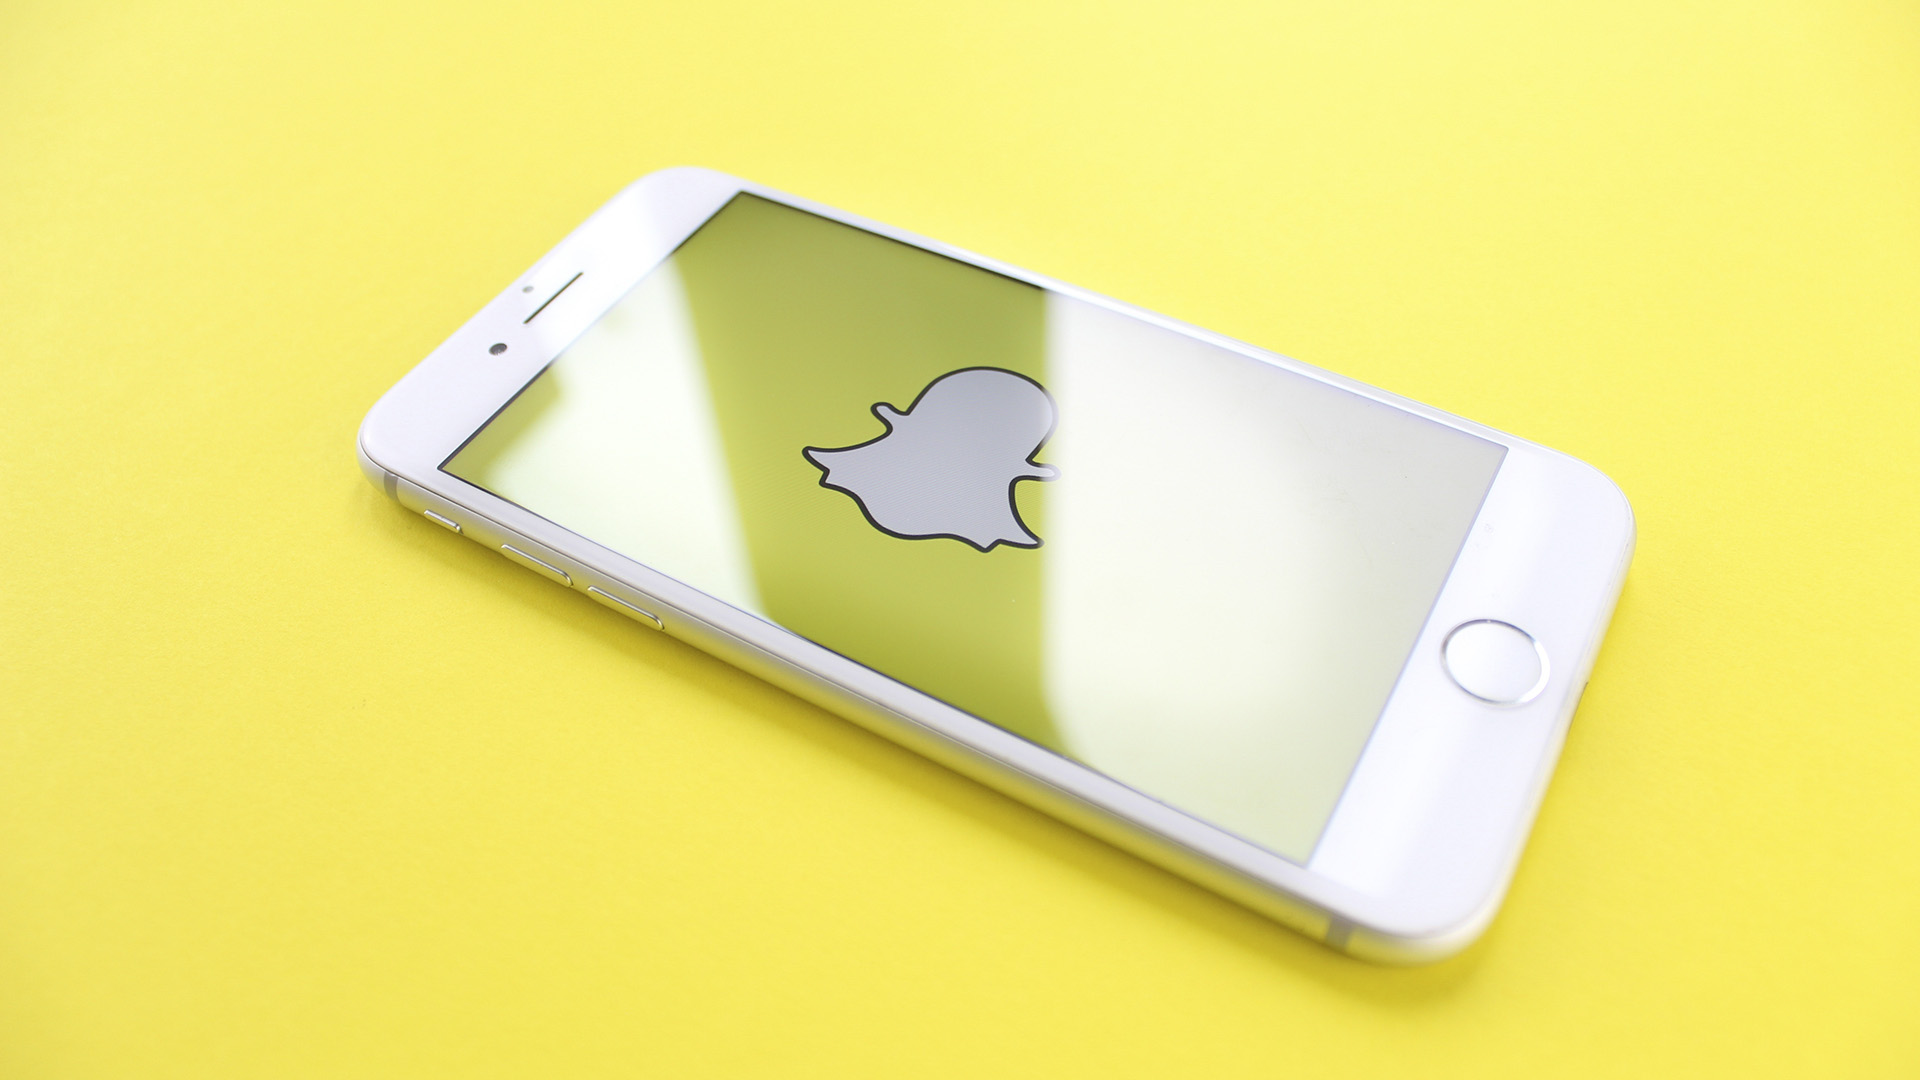 Snapchat Map Introduces Feature To Start Recommending Places For Users' Visits